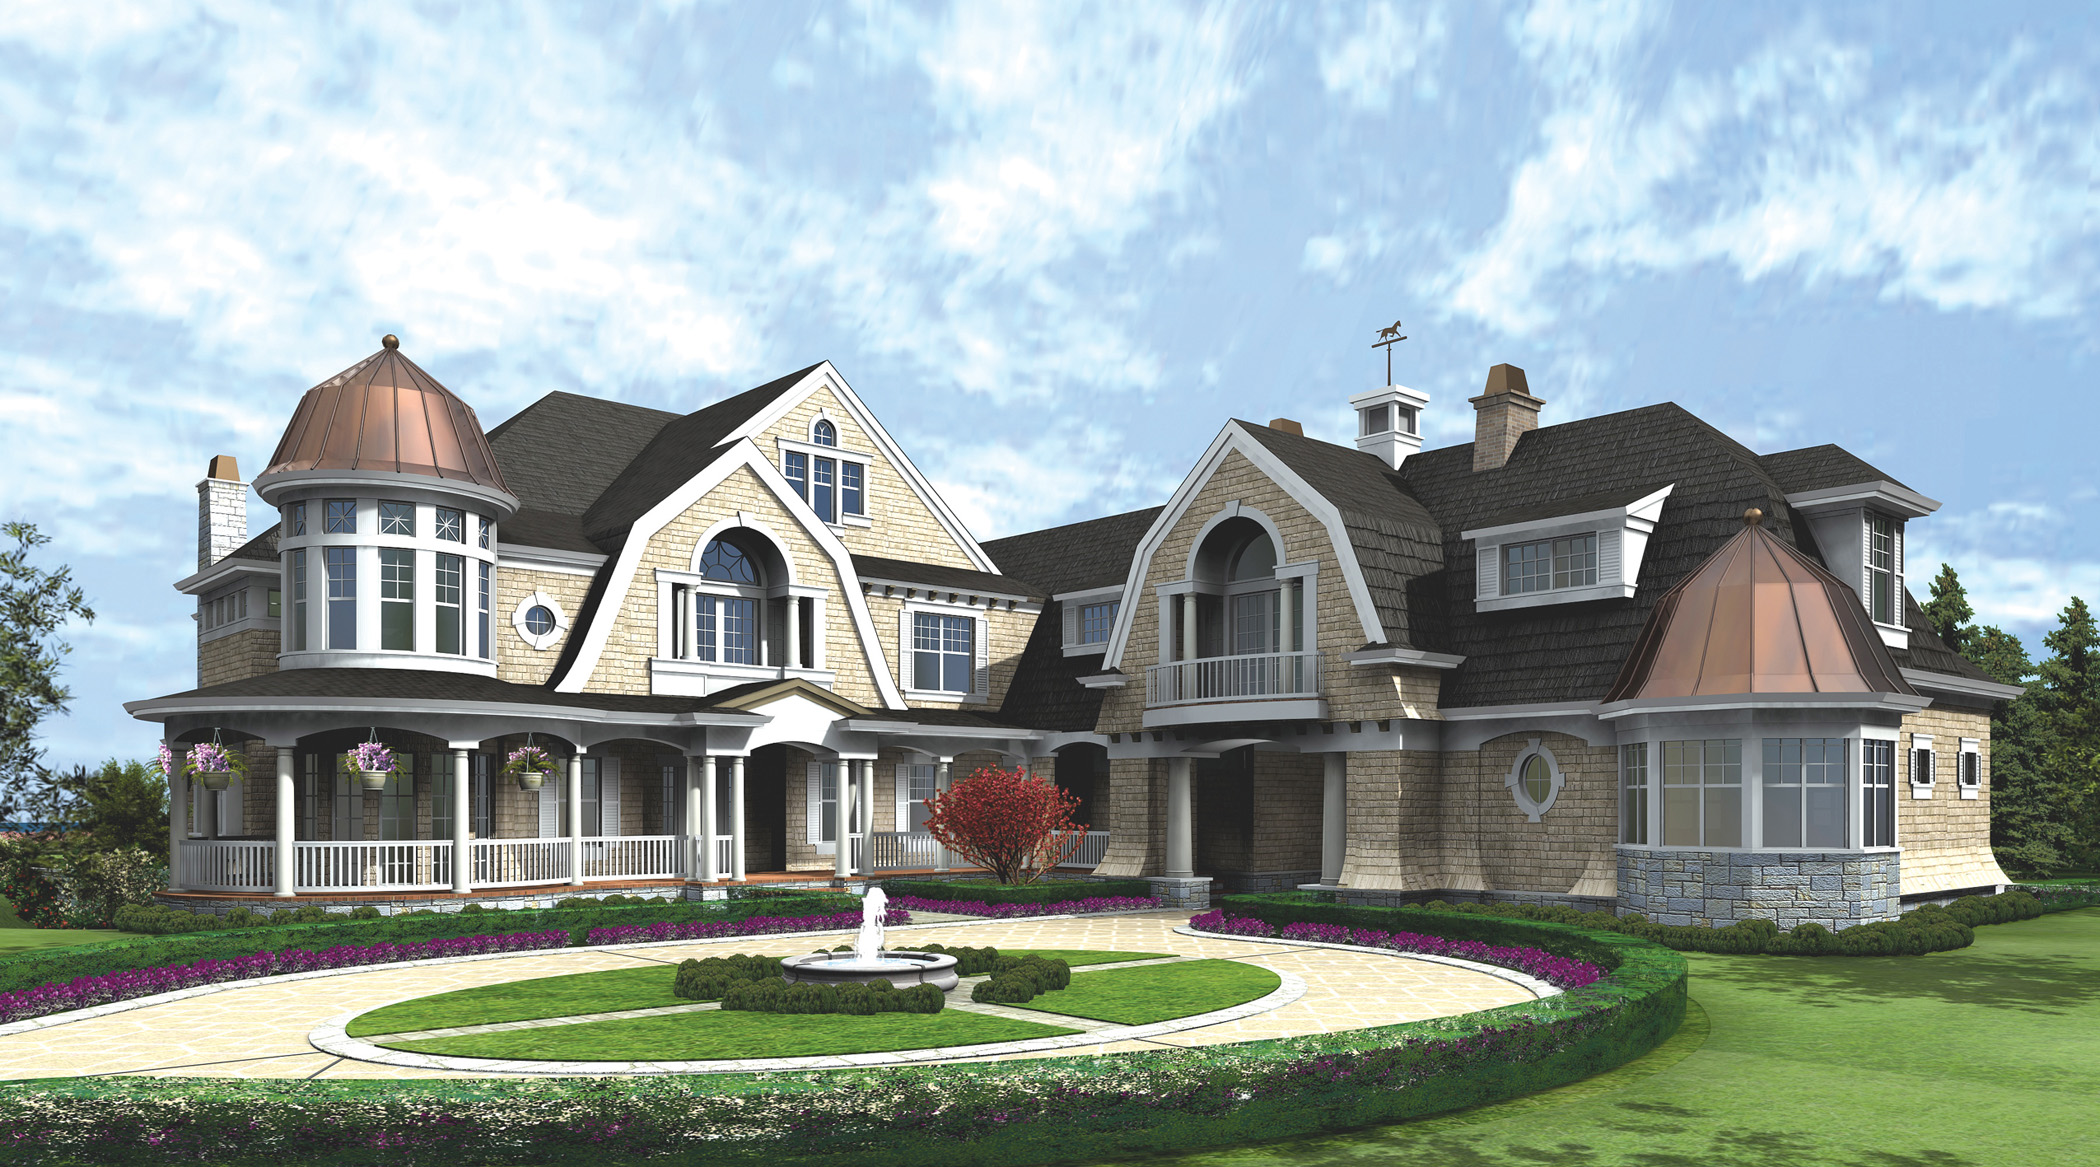 Spectacular hampton style estate 23220jd architectural for Manor farm house plan